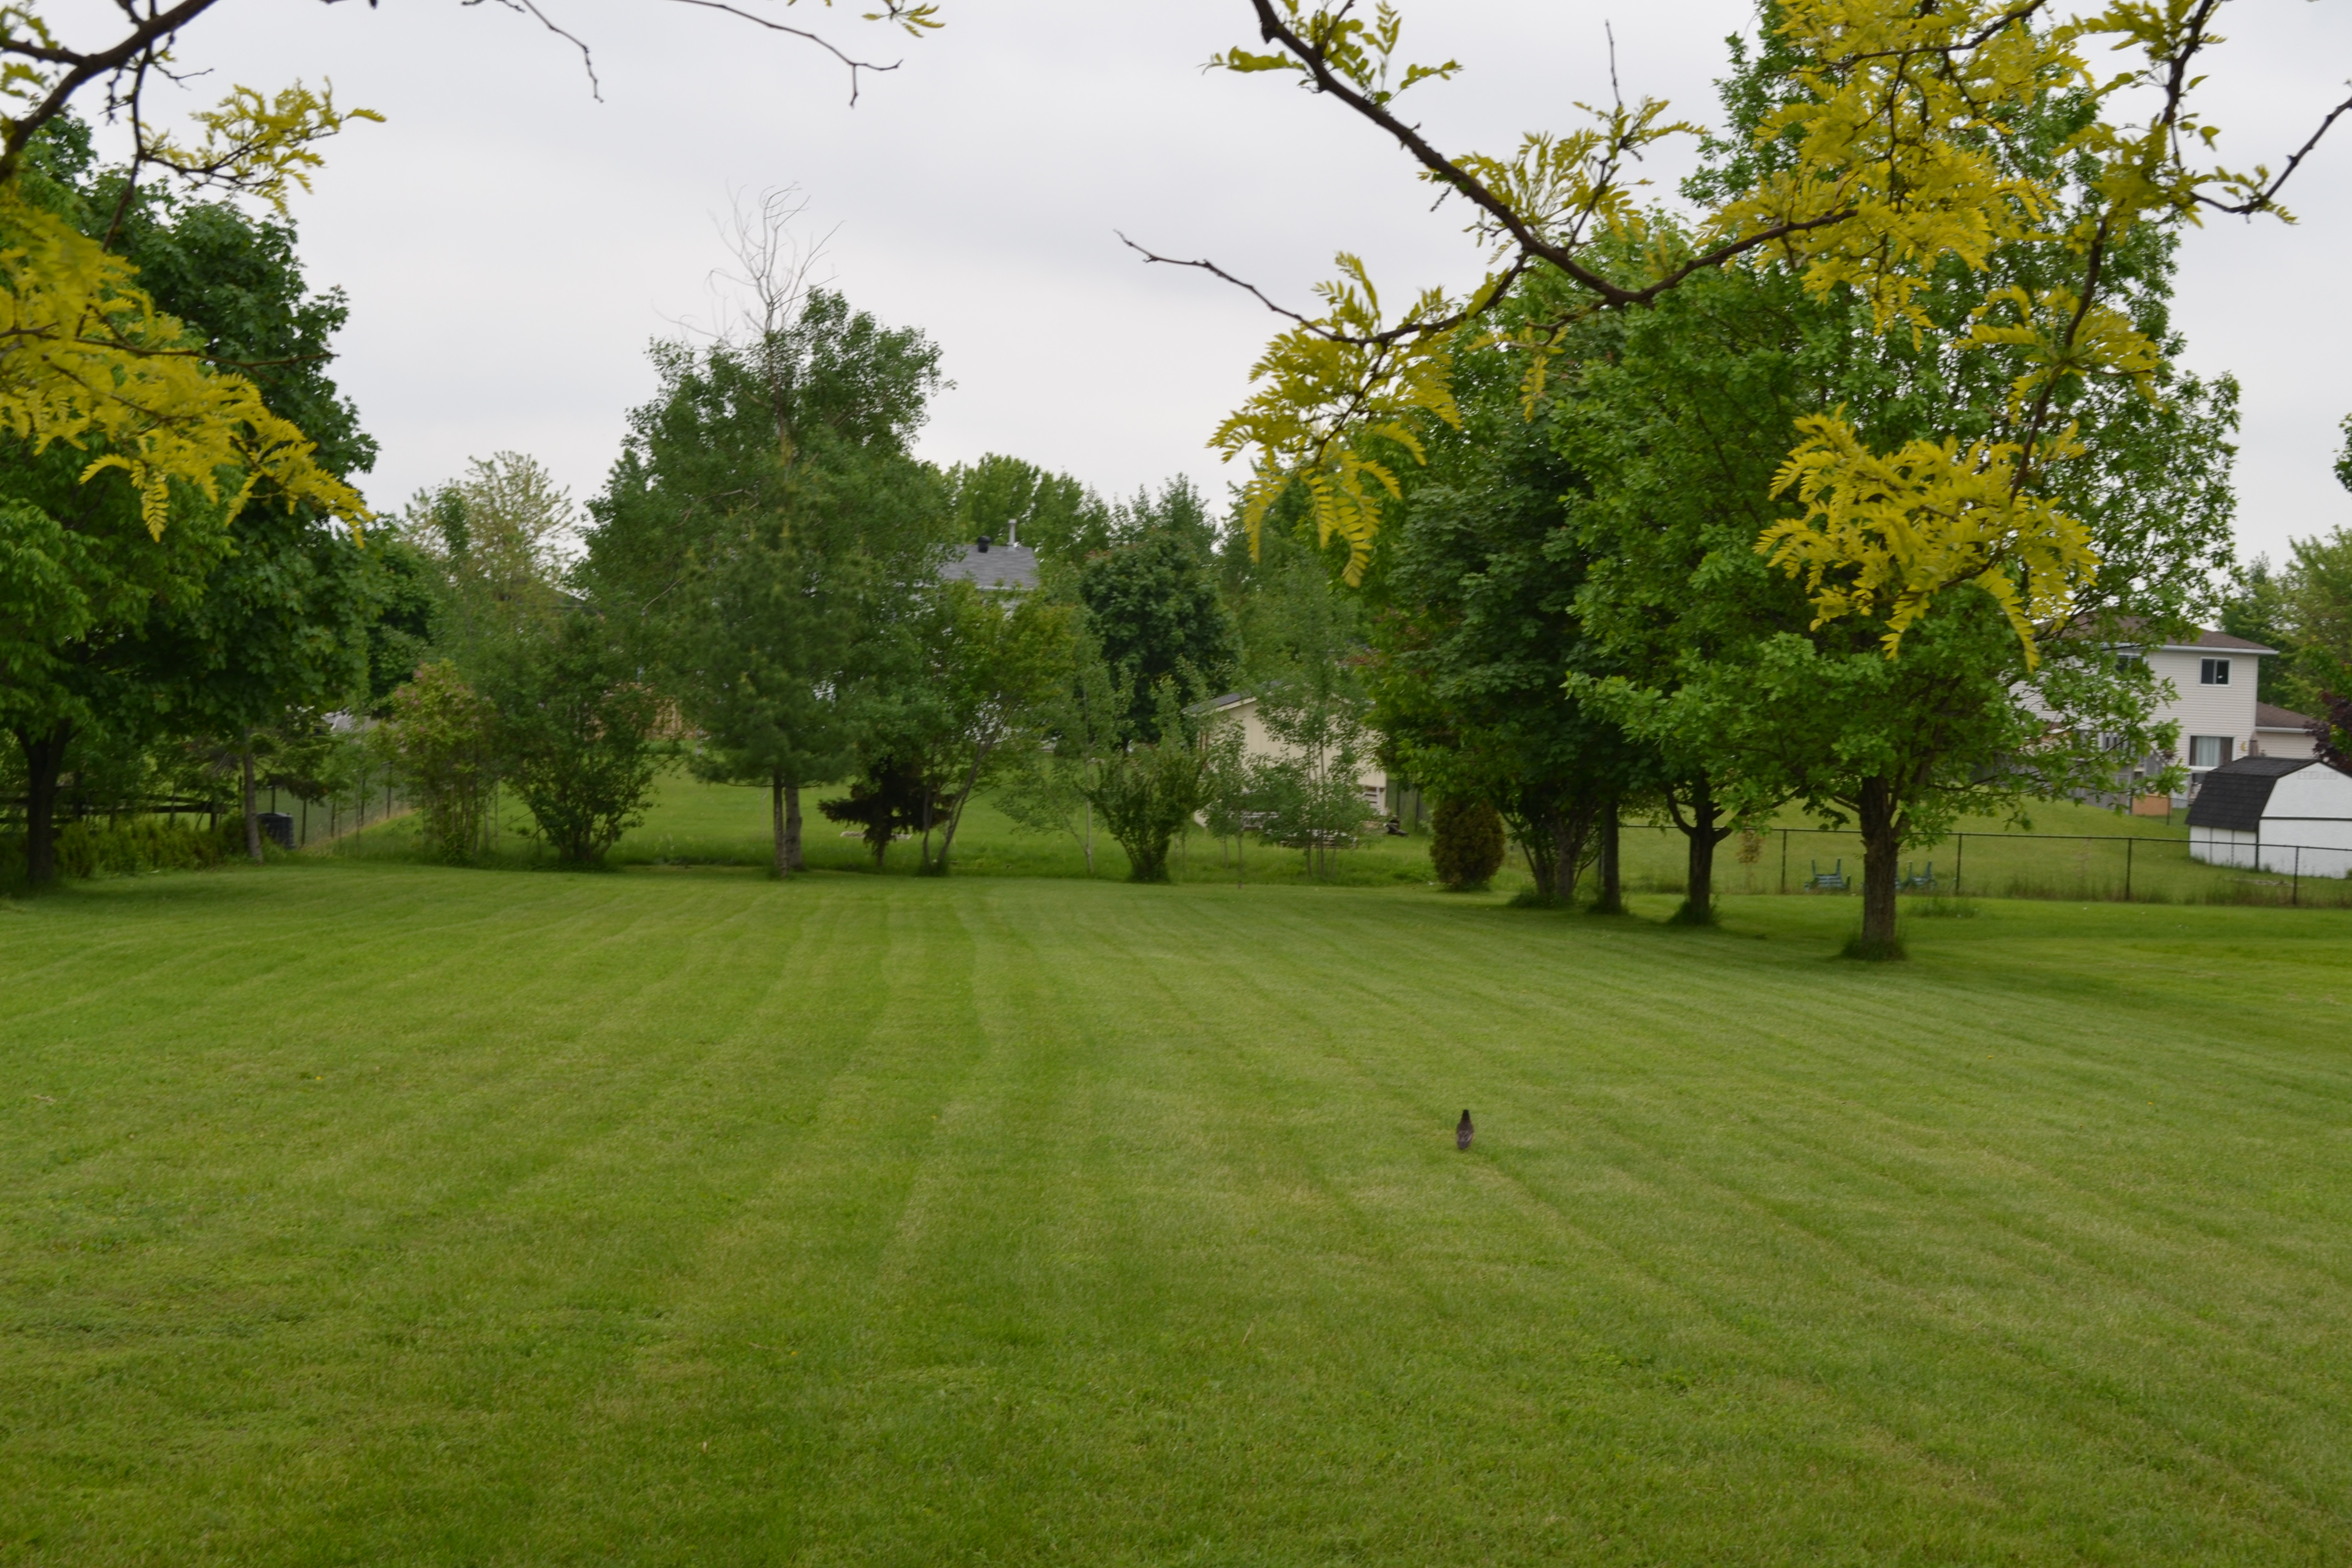 Lawn care rmsiblog for Lawn and landscape